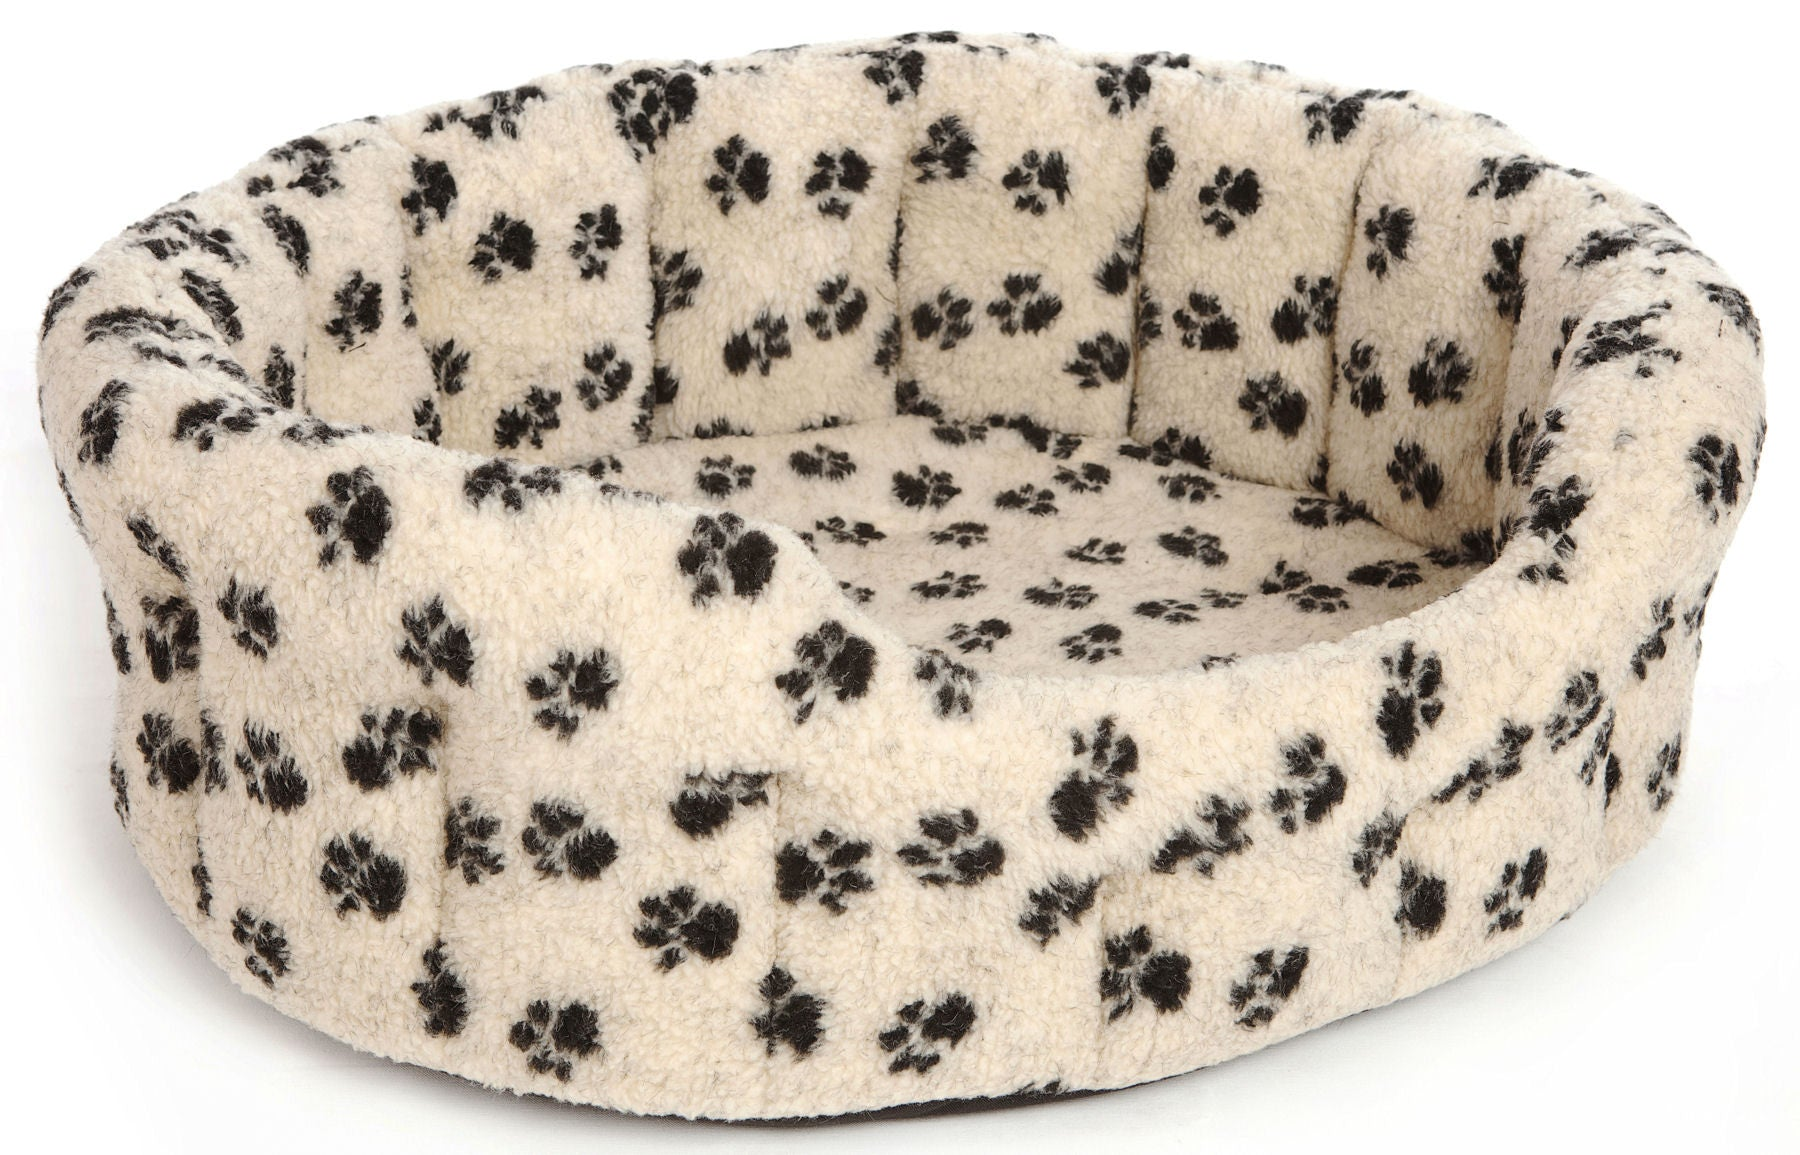 Pets and Leisure Oval Softee Fleece Paw Print Dog Bed